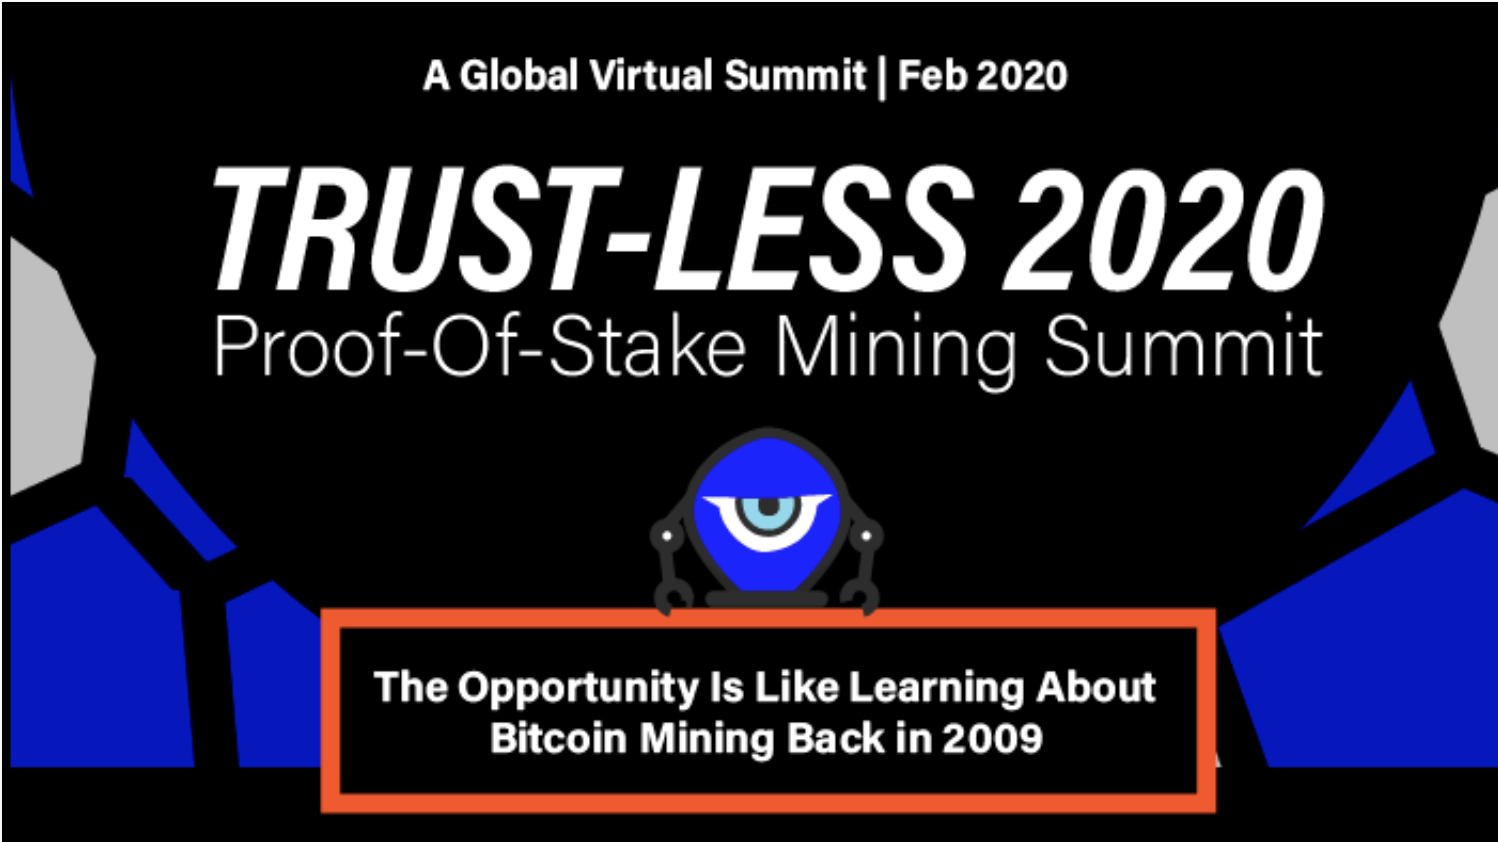 Trust-less 2020 Proof-of-stake mining summit